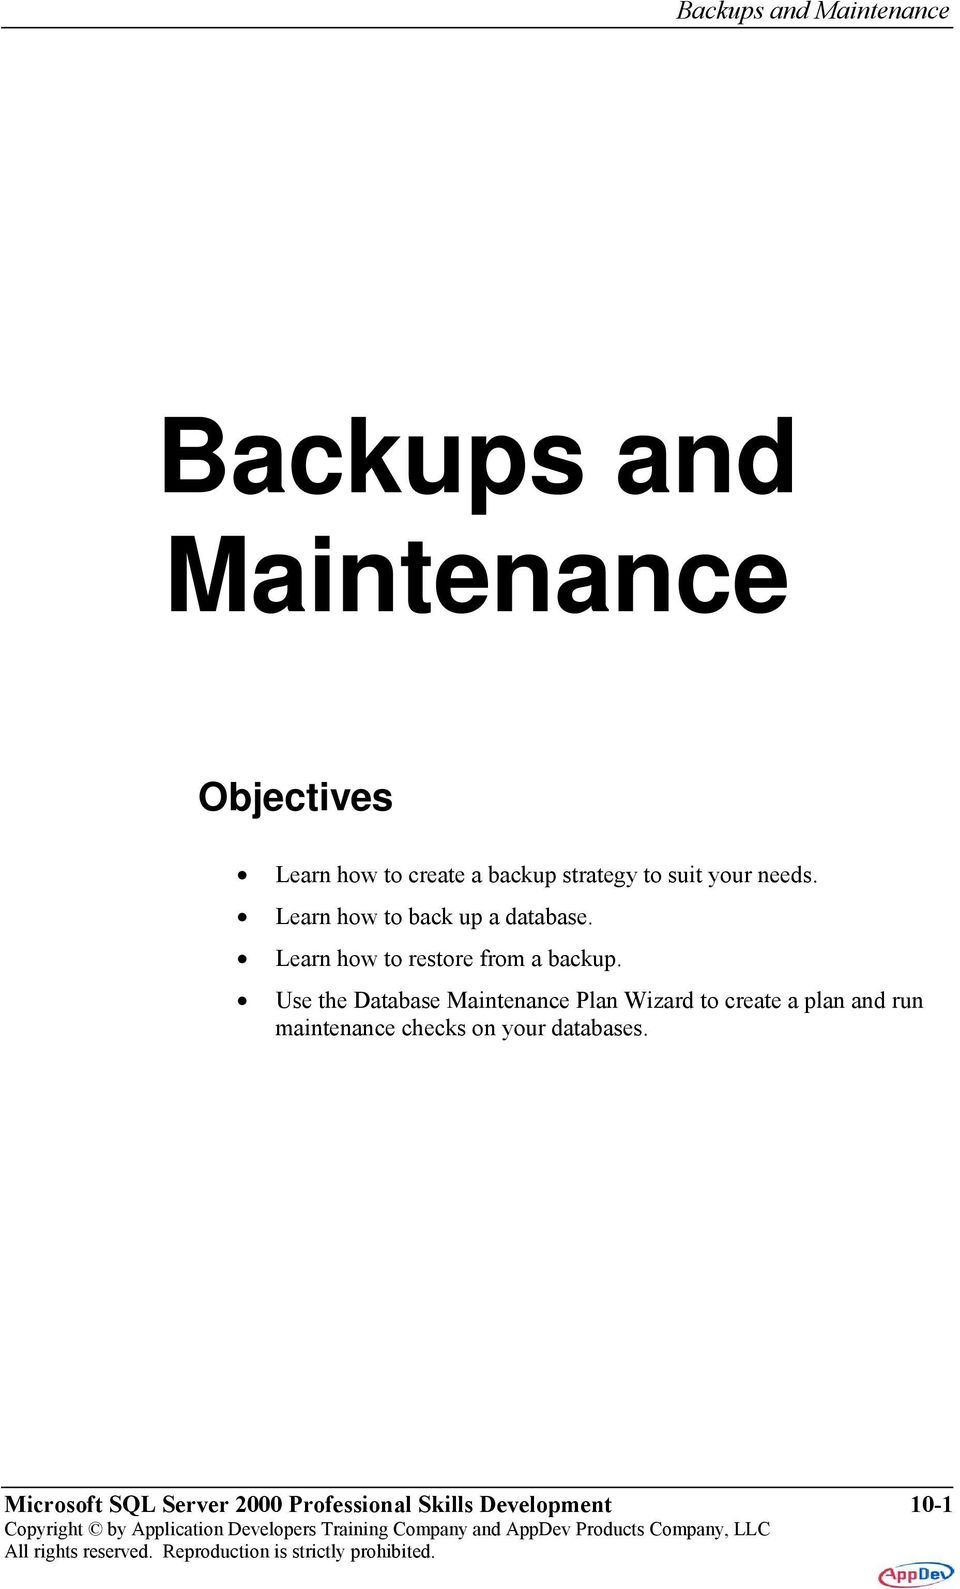 Learn how to restore from a backup.